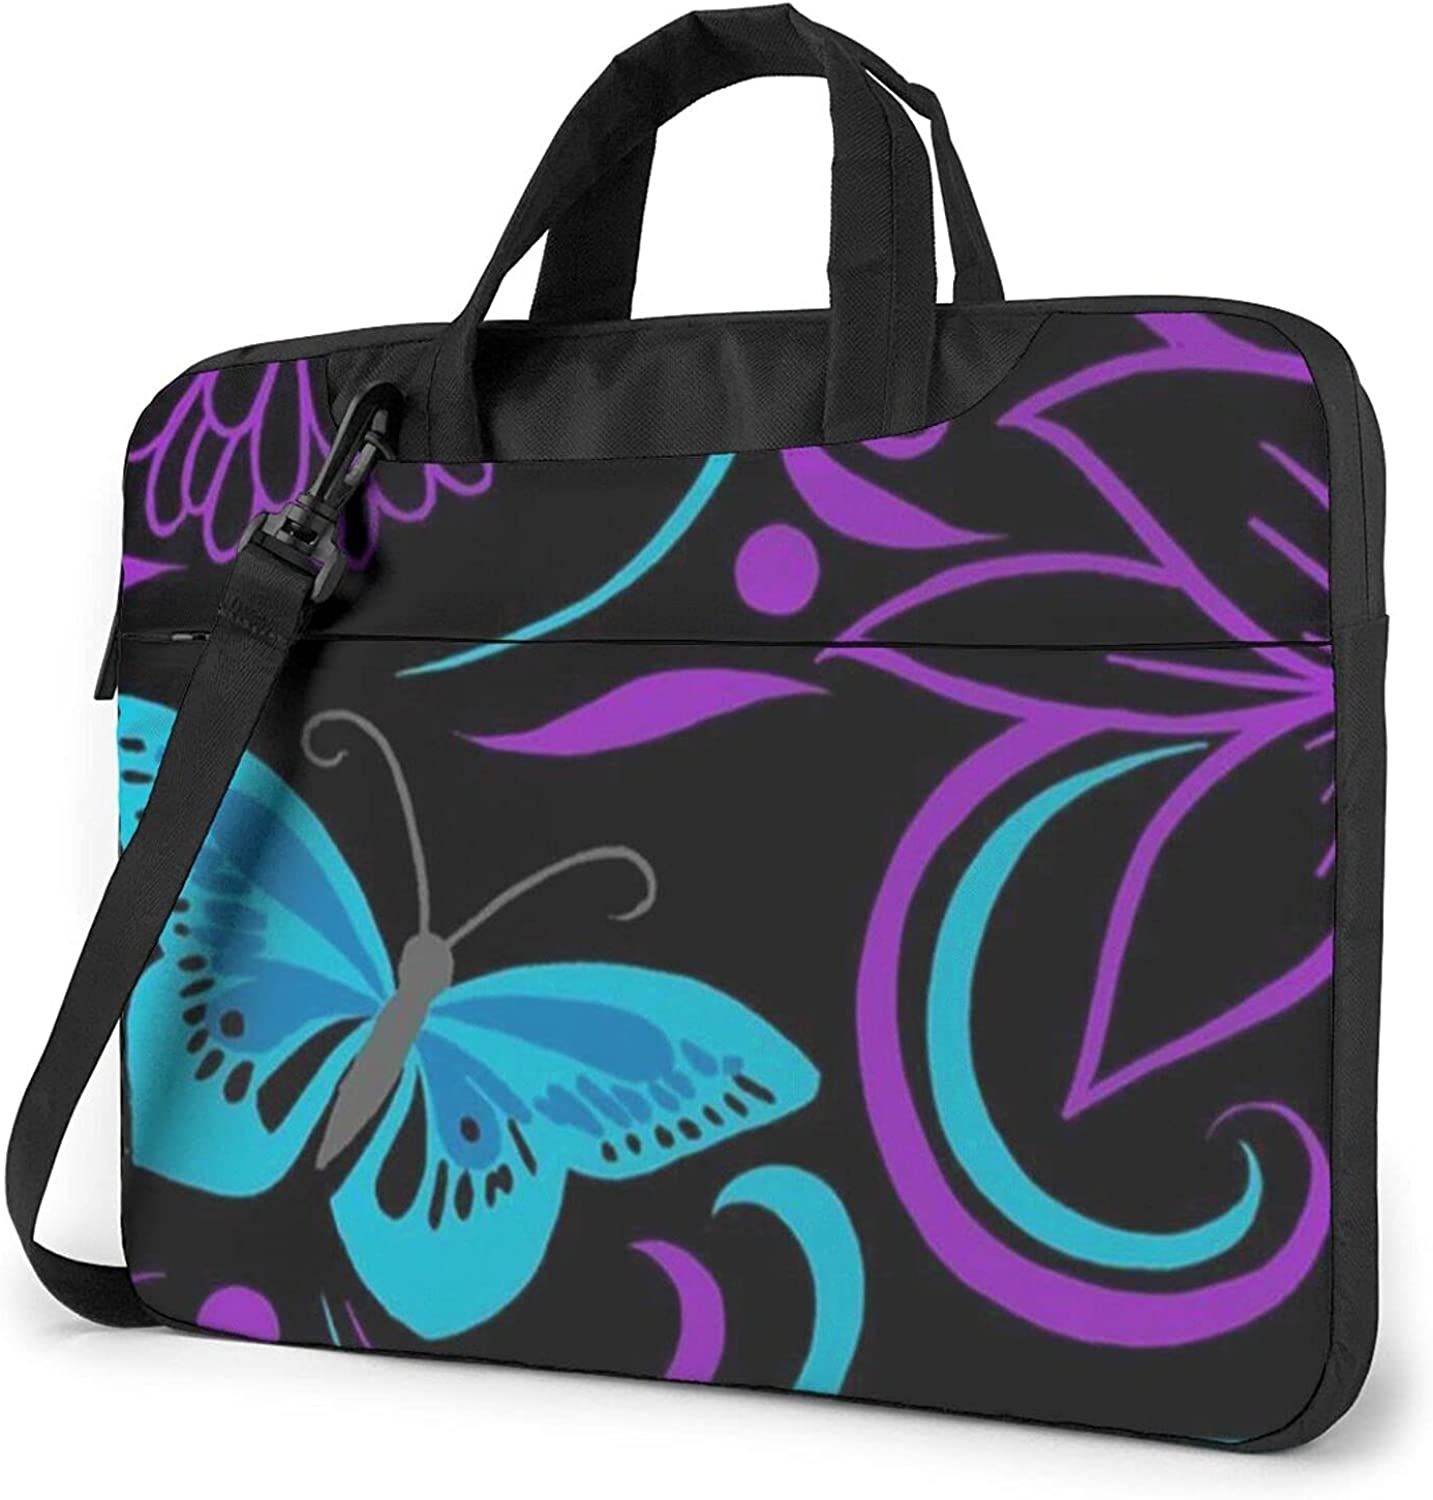 Purple Austin Mall Butterfly And Manufacturer direct delivery Flowers Laptop Mess Bag Shoulder Waterproof